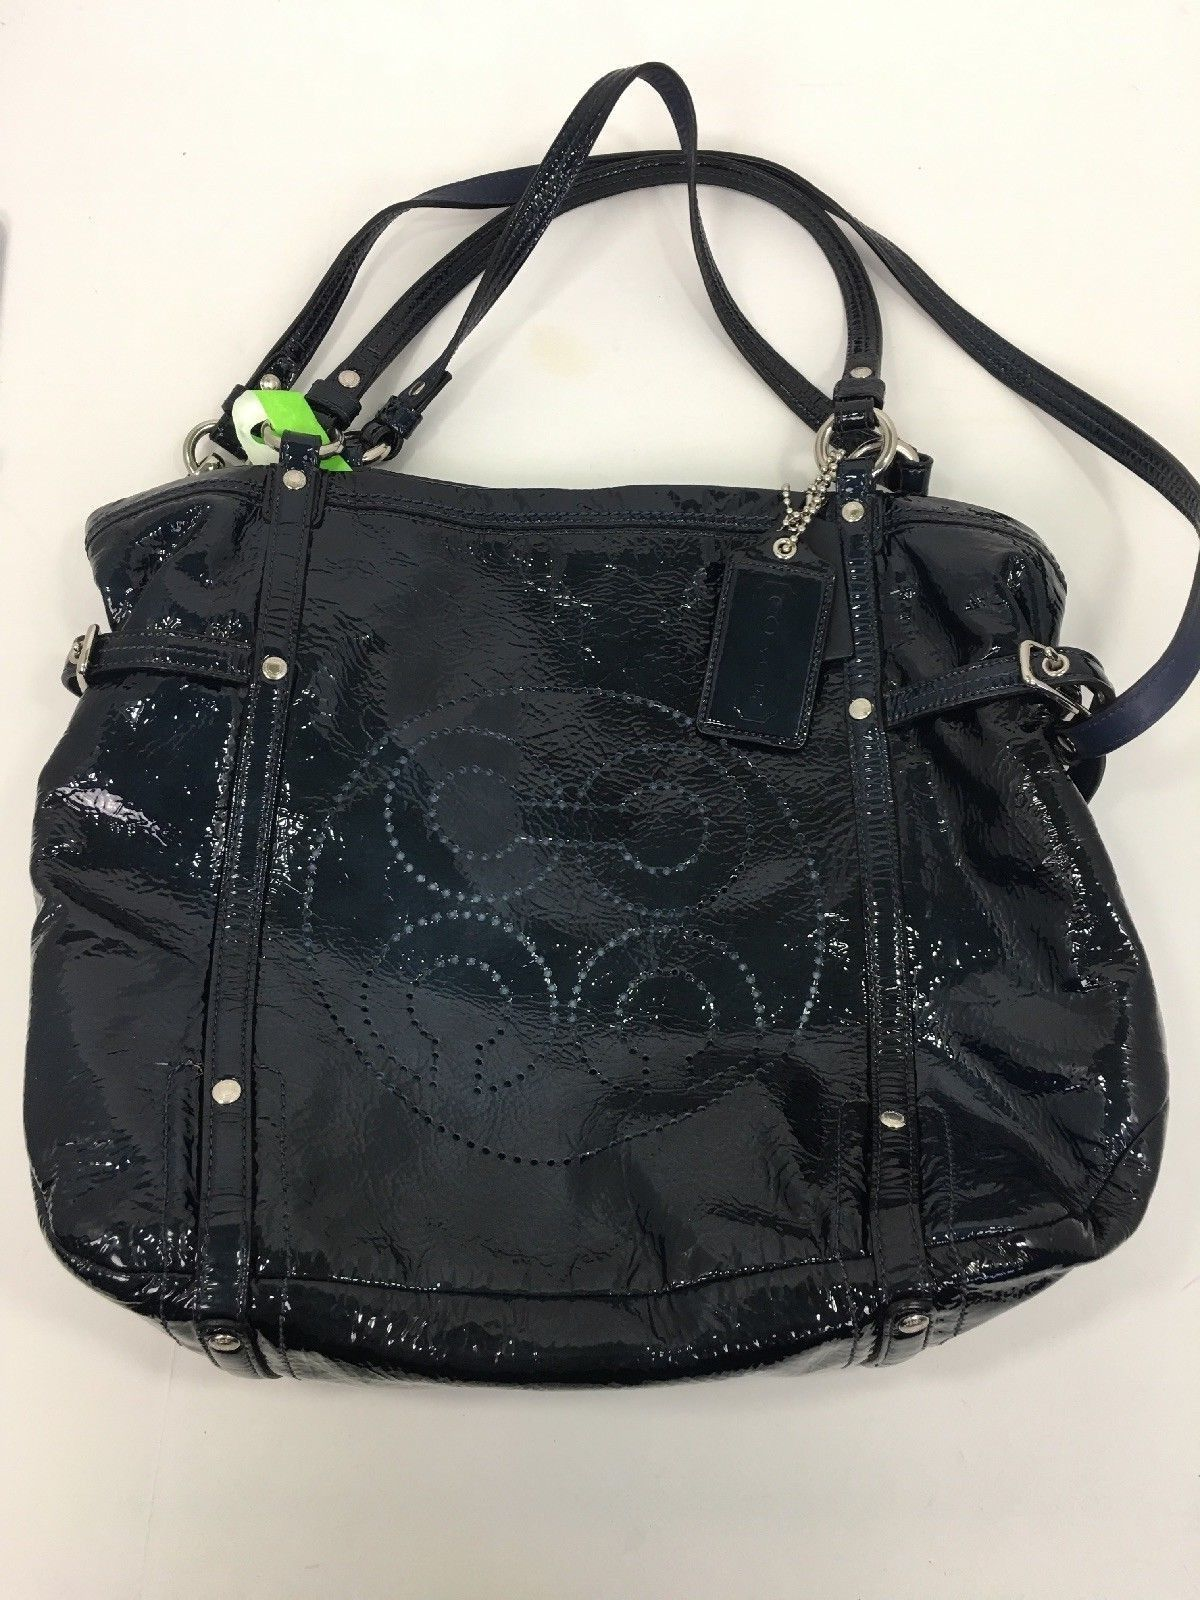 2a9548f3c2 Coach Bag Audrey Navy Blue Patent Leather Andie Cinched Shoulder Tote 17065  B2V